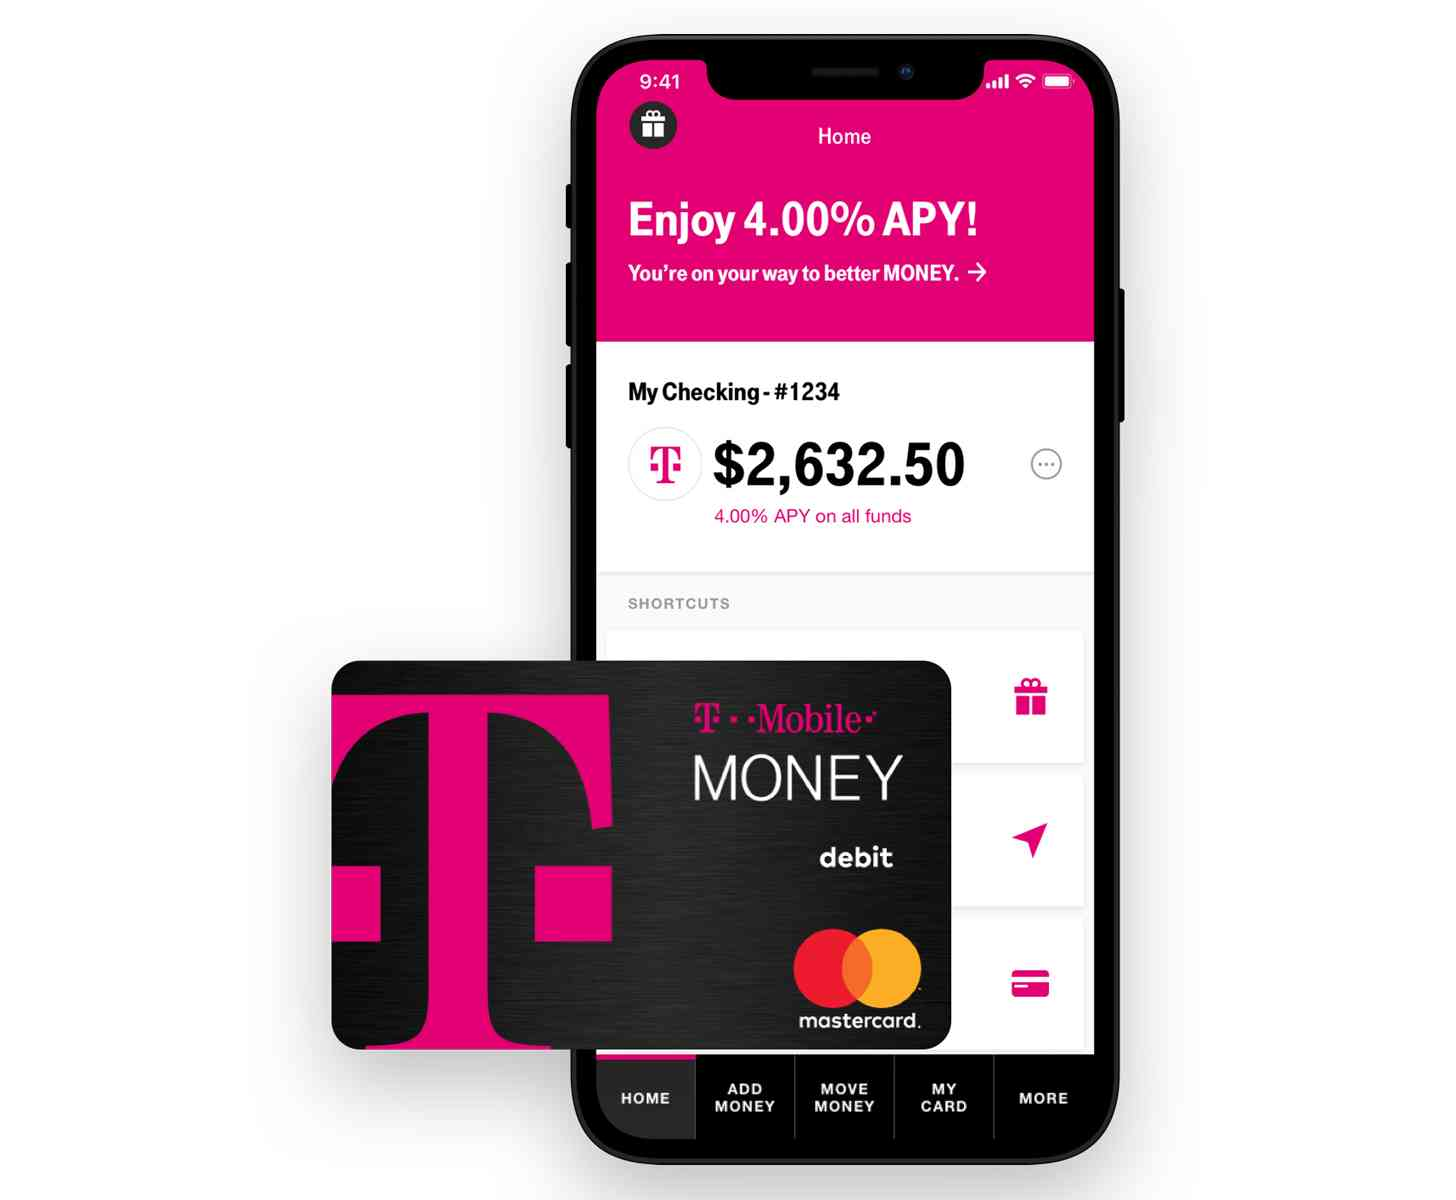 T-Mobile Money banking service